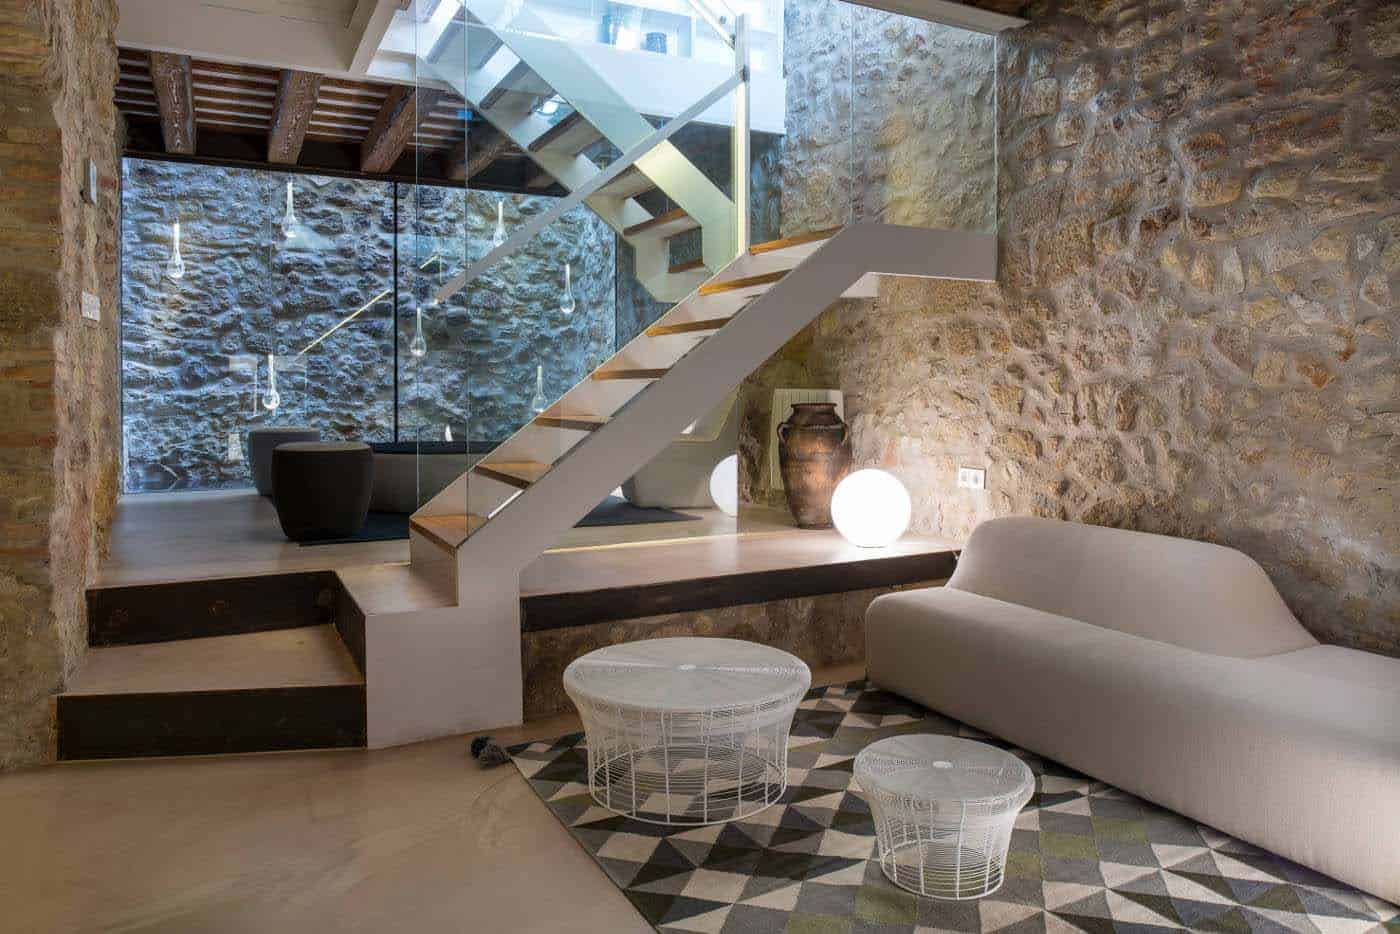 Historic Stone Dwelling-Gloria Duran Torrellas-02-1 Kindesign